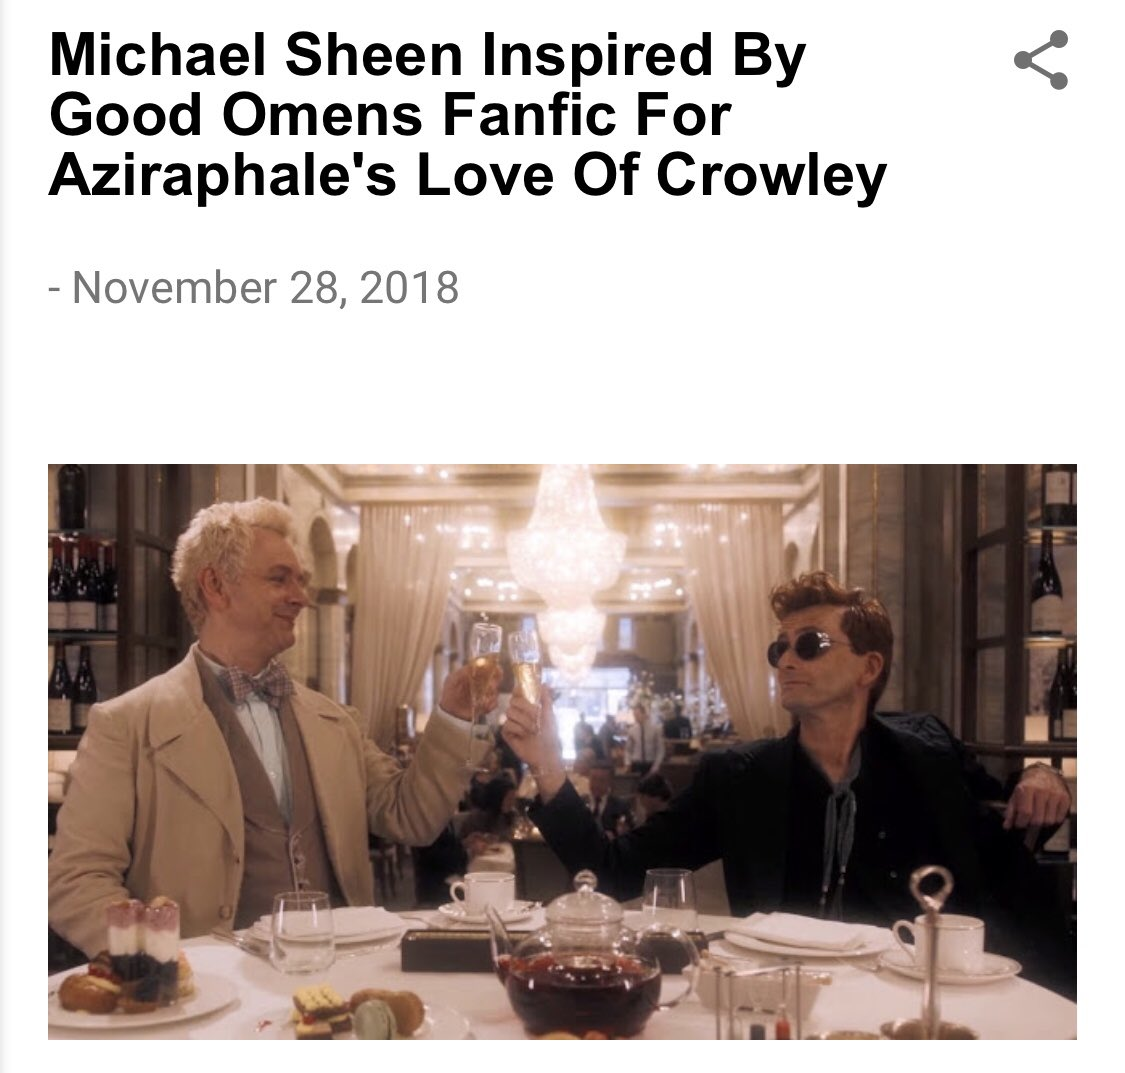 only news that matters about the good omens adaptation imo